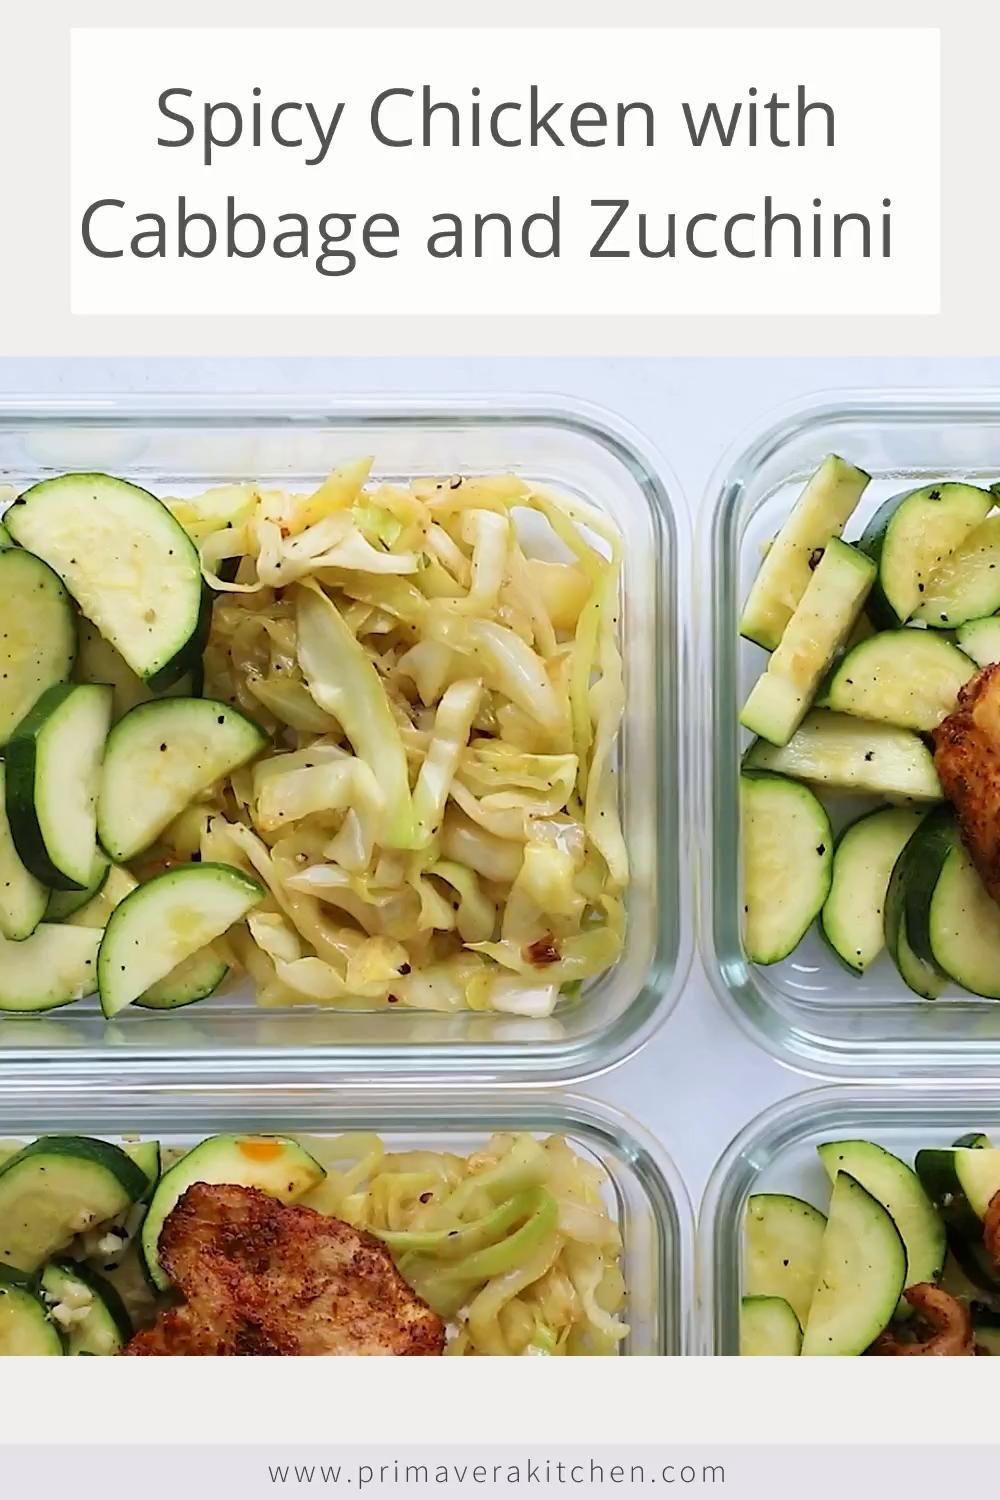 Spicy Chicken with Sauteed Cabbage and Zucchini Bowls -   19 meal prep recipes for beginners simple ideas